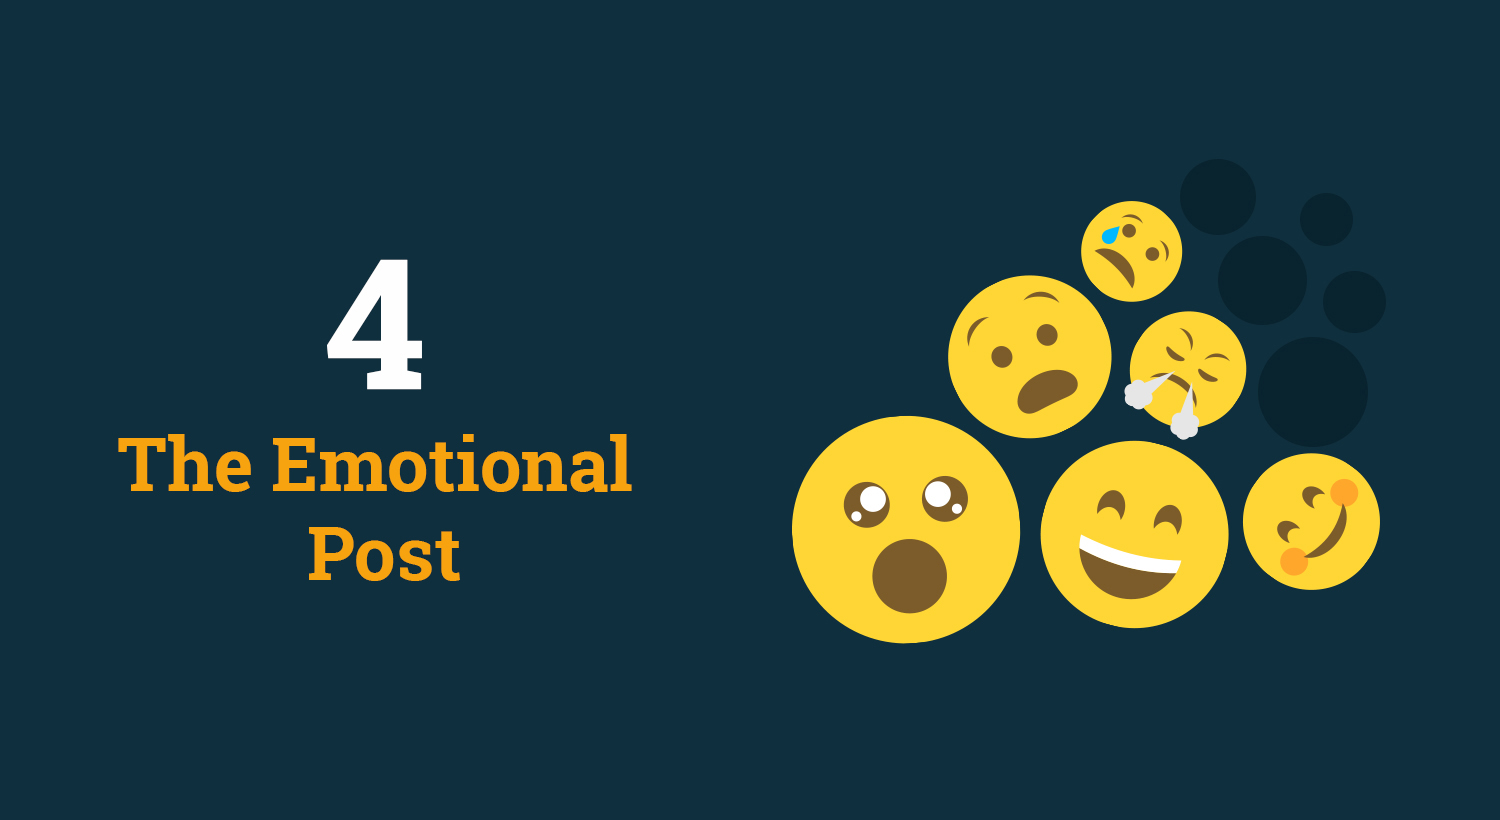 Social media content - the emotional post